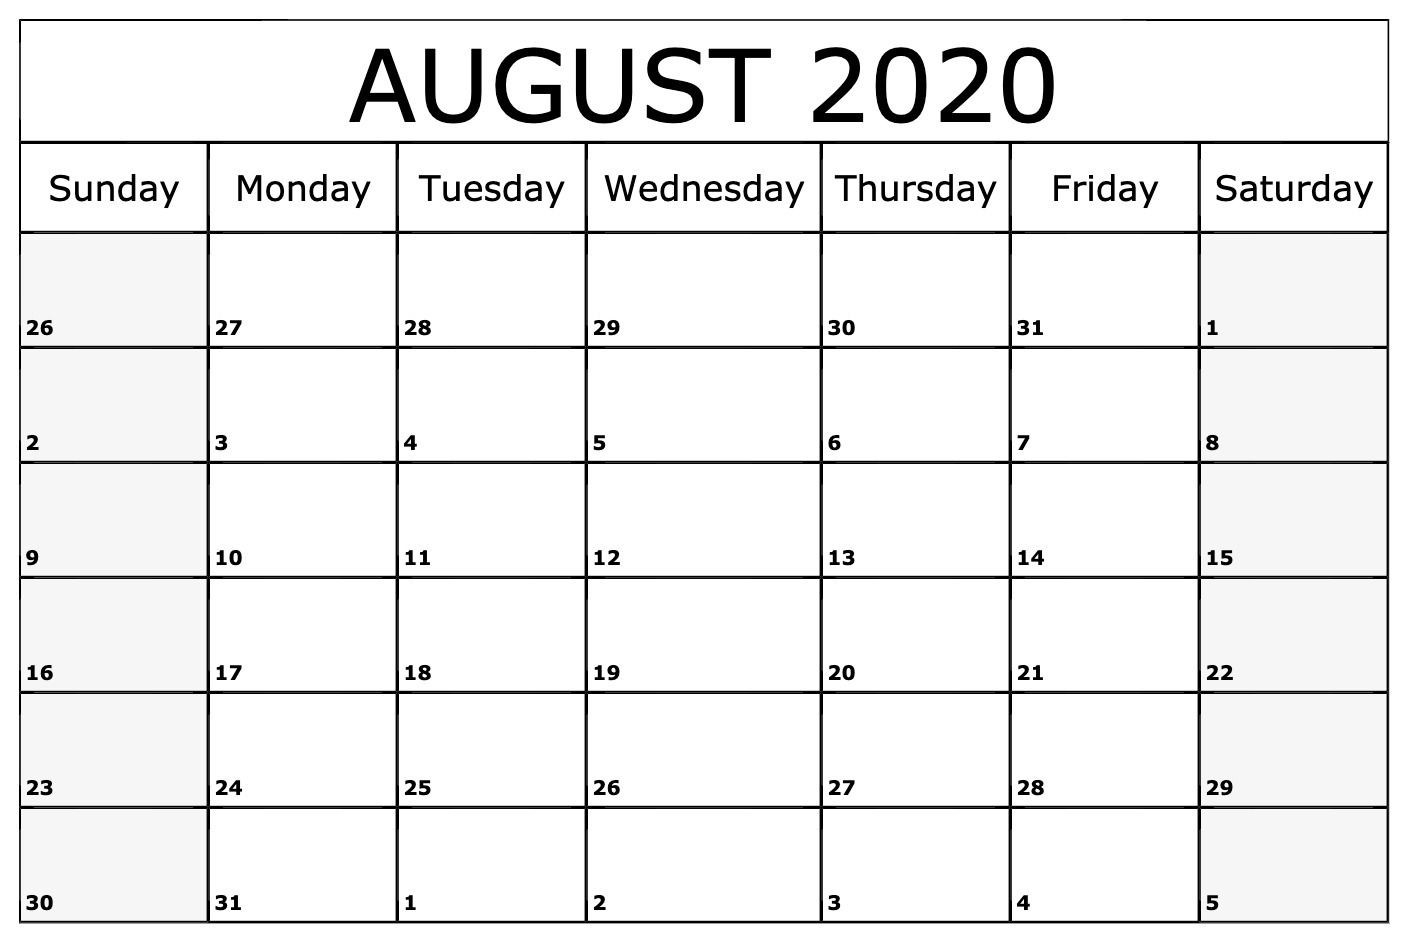 August 2020 Calendar Template | August Calendar, Blank-Printable Blank Monthly Calendar 2020 August